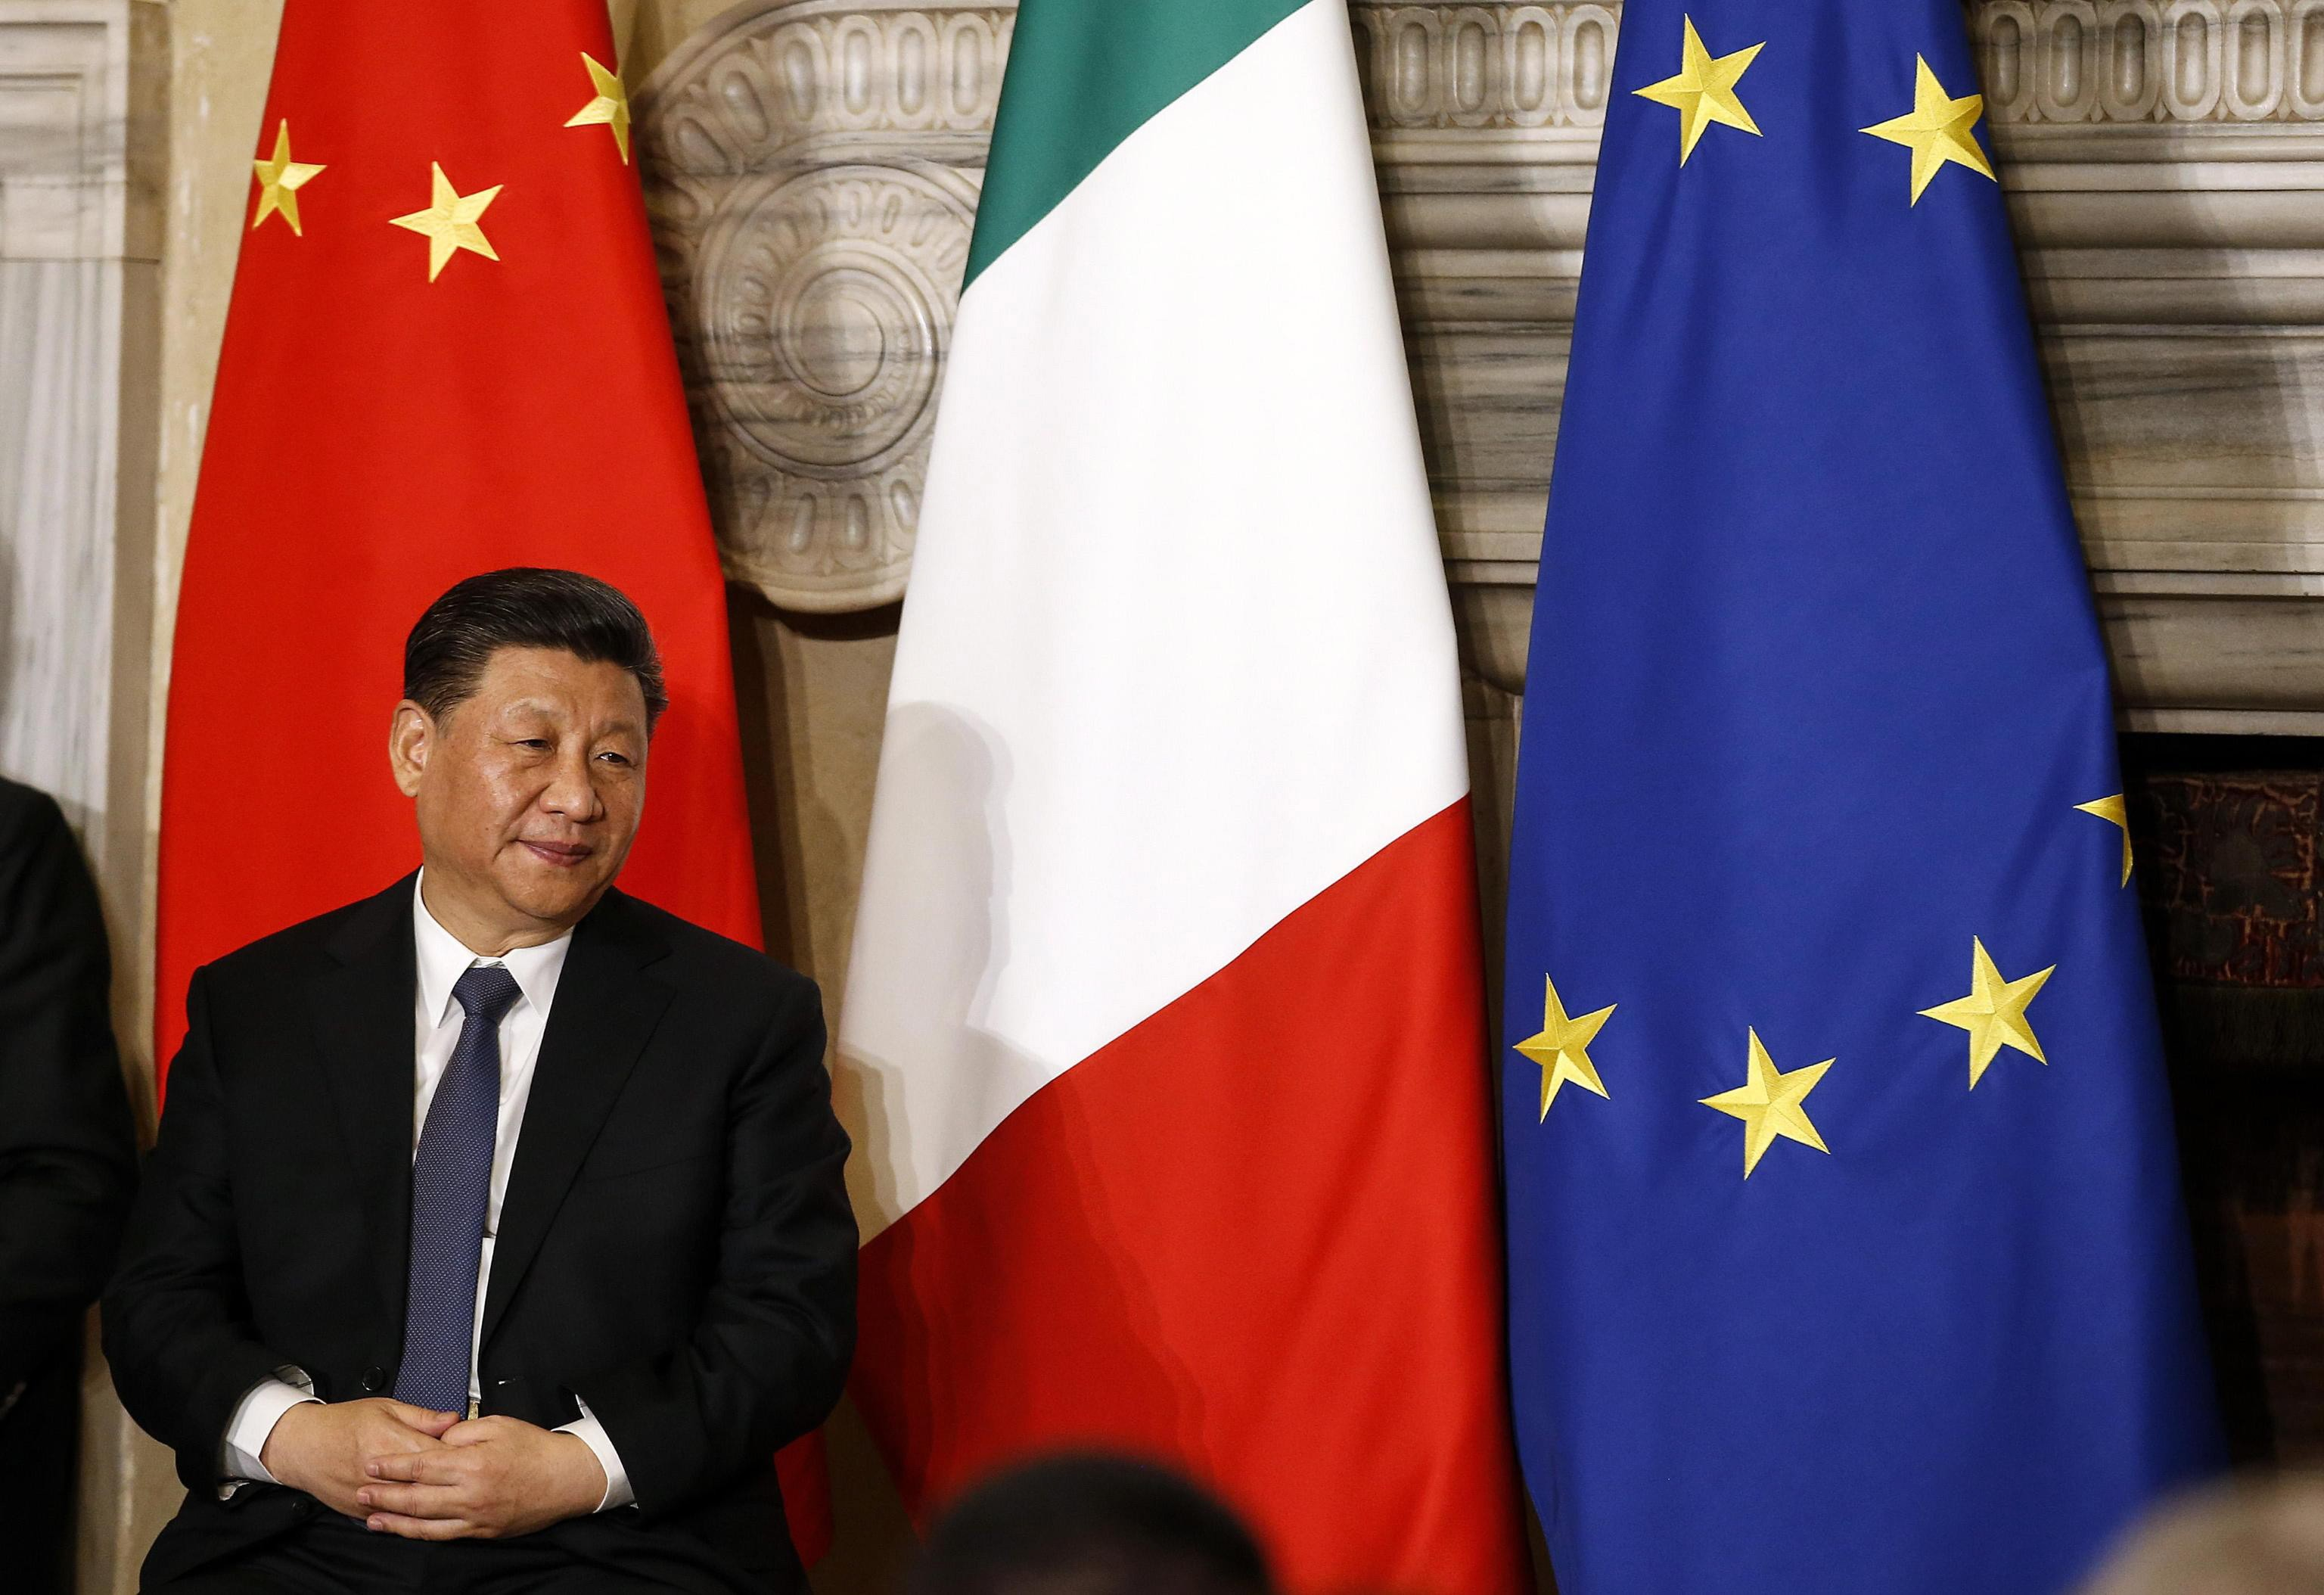 China will not divide Europe, senior diplomat says